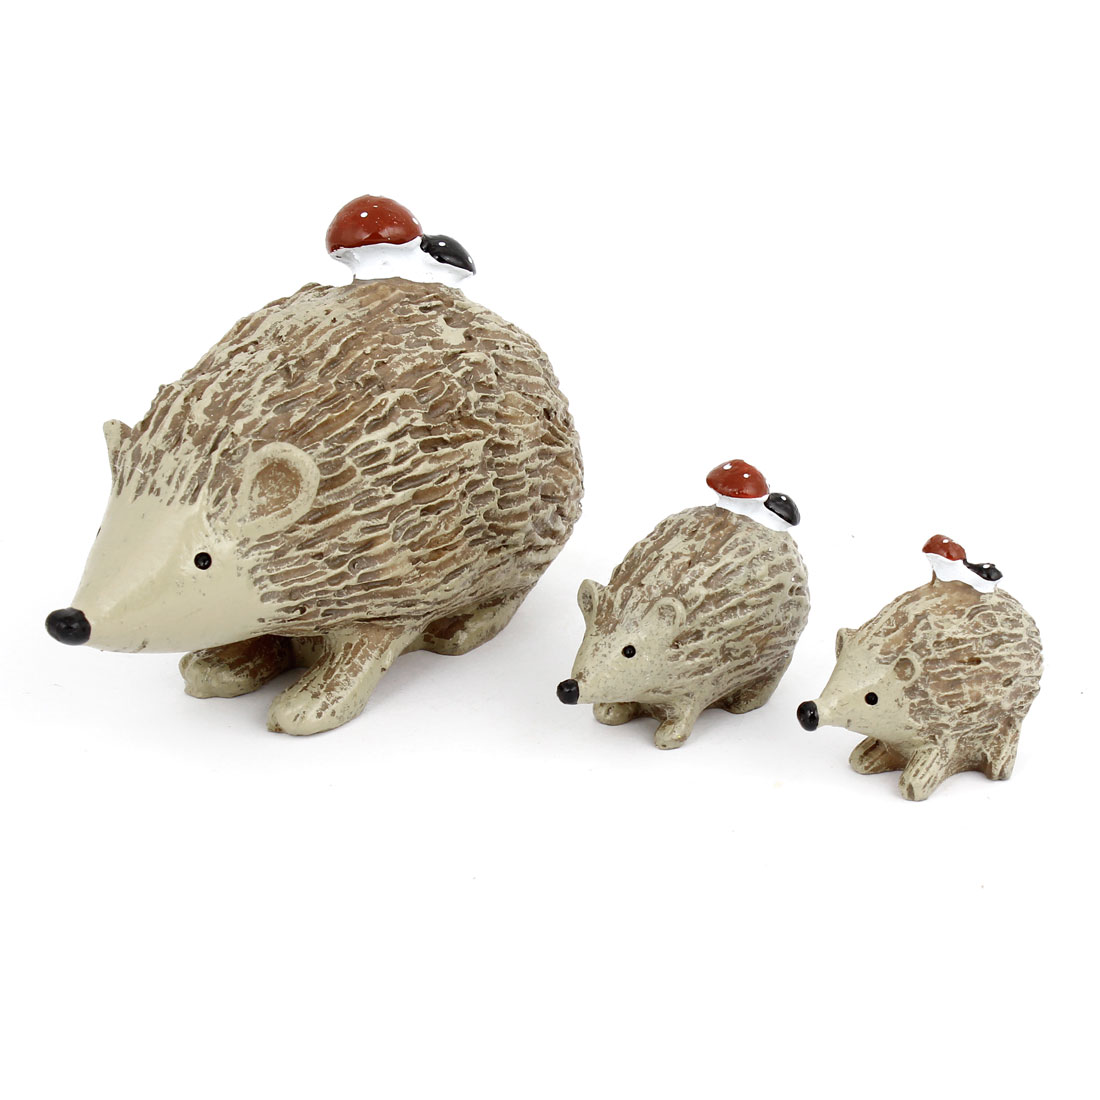 3 in 1 Tabletop Adorn Craft Hedgehog Decoration Brown